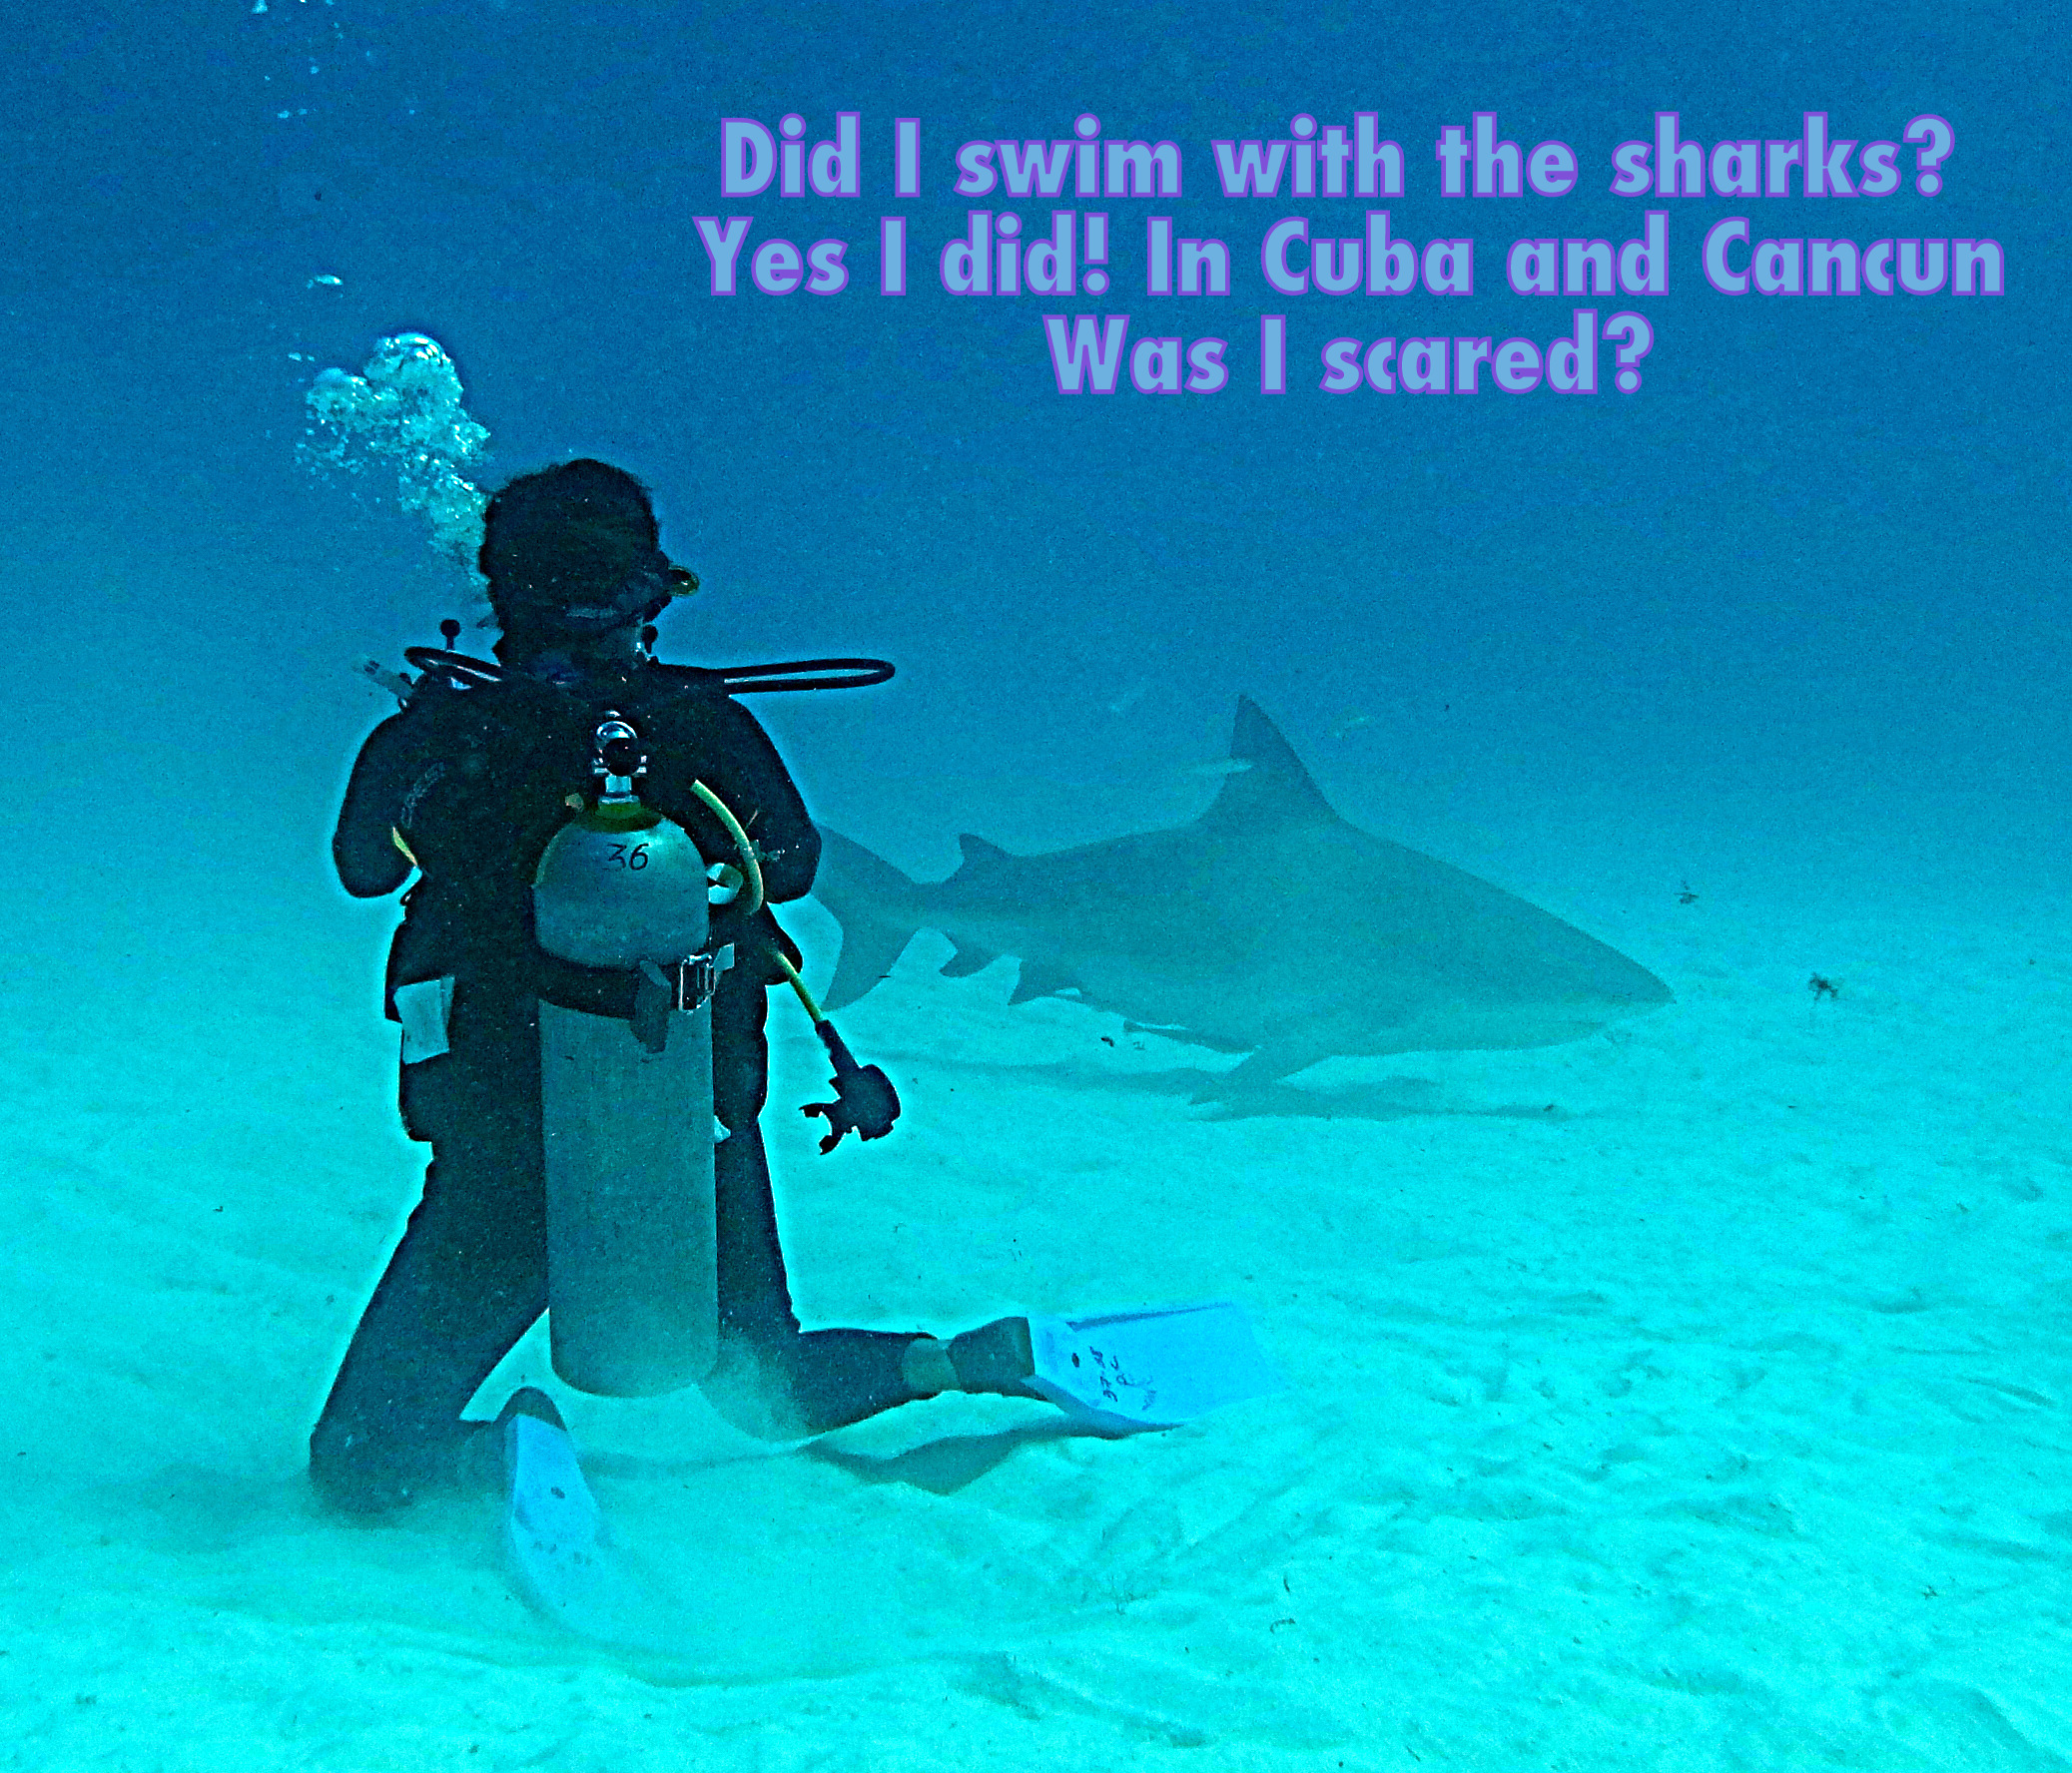 Dec News: Did I swim with the sharks? Was I scared?